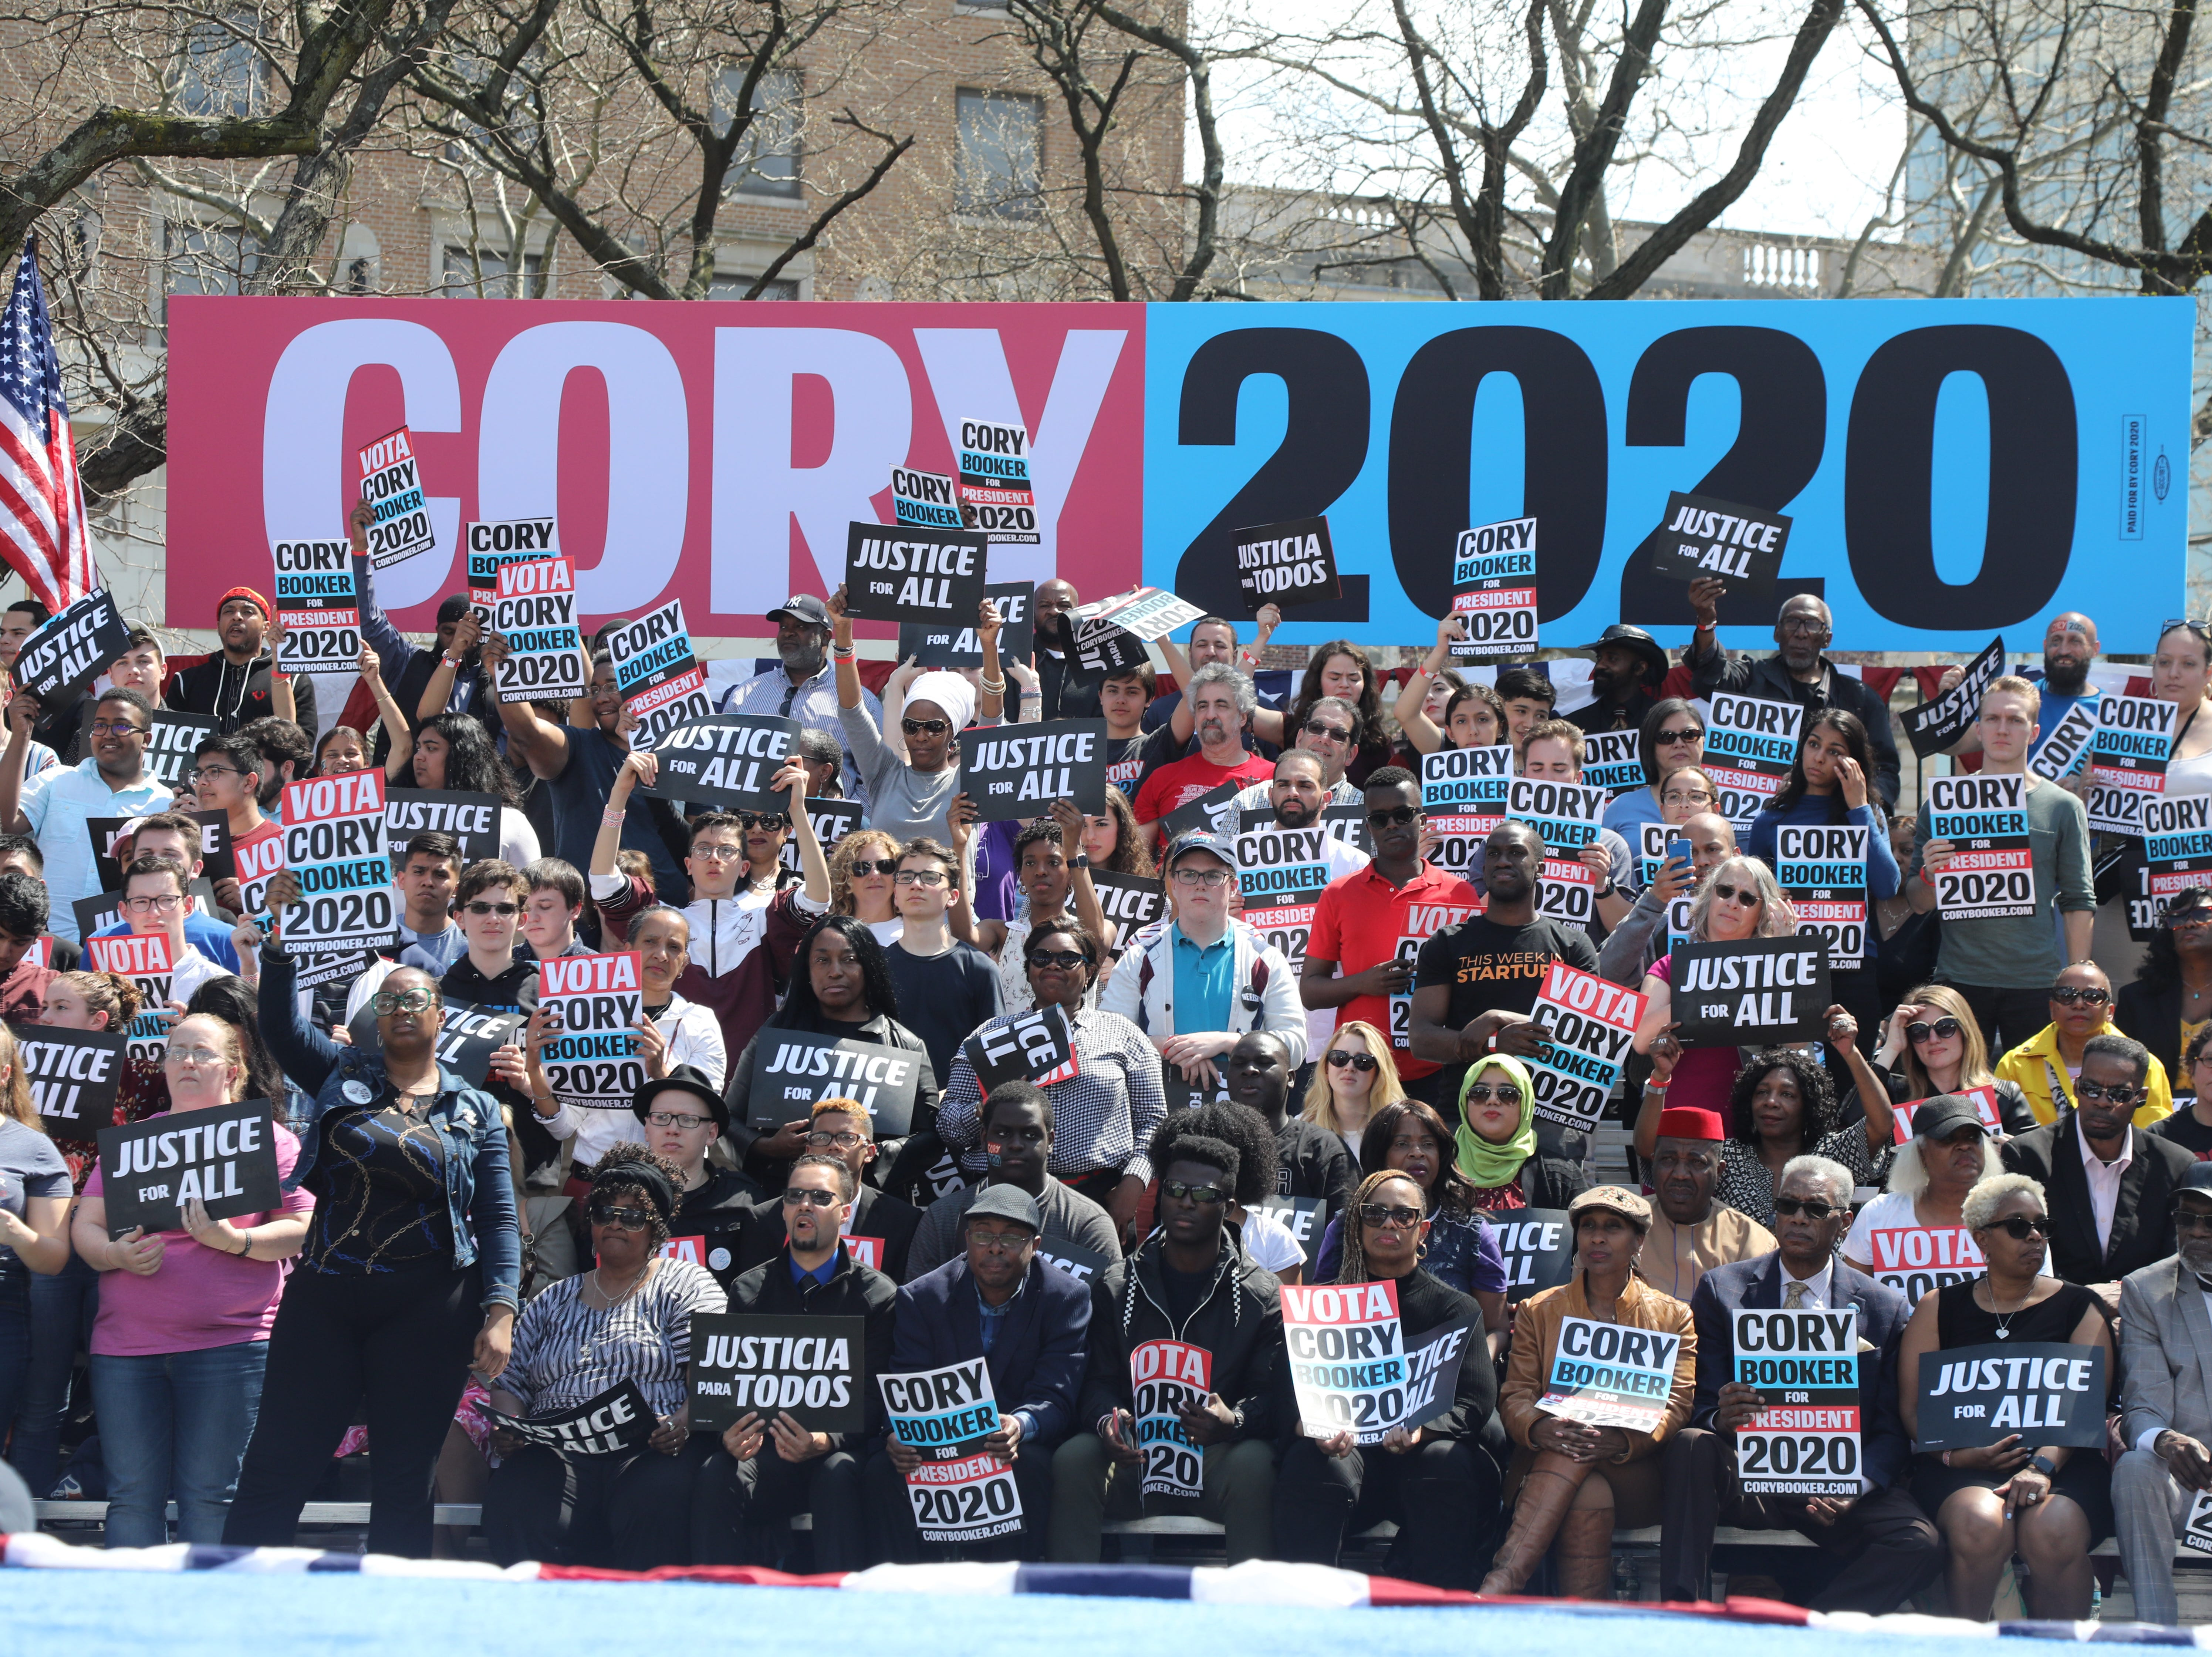 Supporters at a rally to kick off the Cory Booker campaign for president that was held at Military Park in Newark on April 13, 2019.